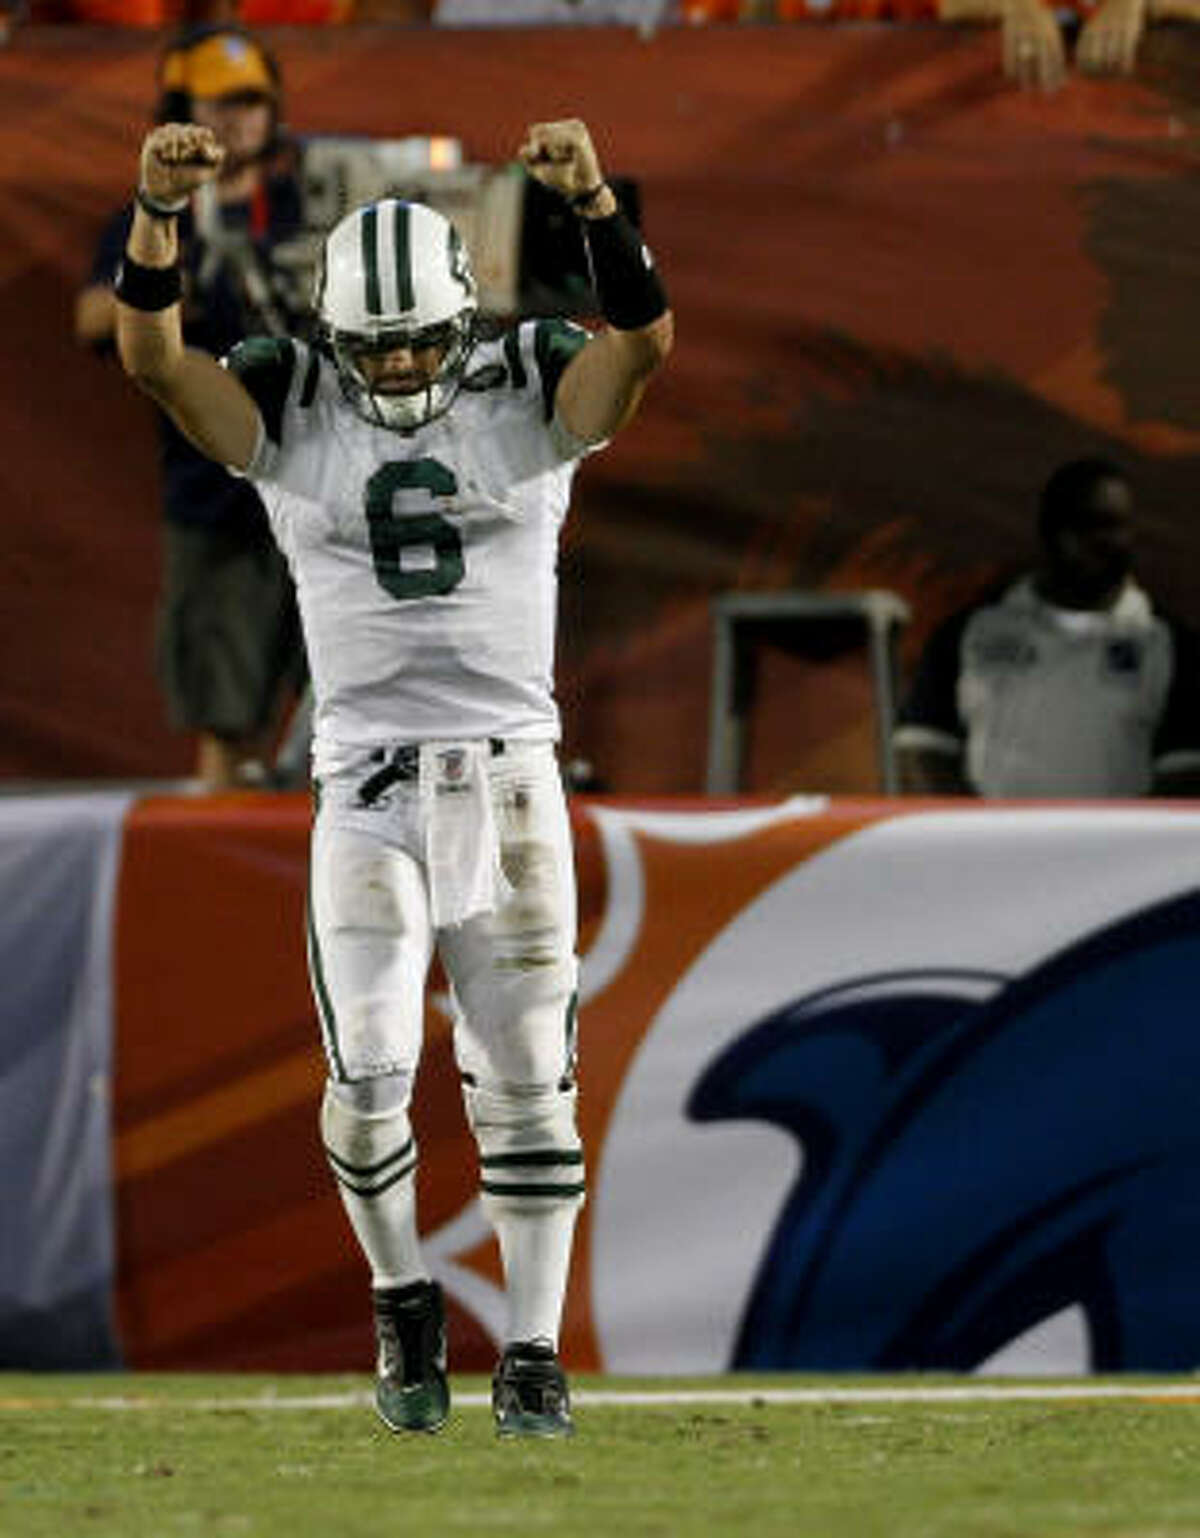 Sept. 26: Jets 31, Dolphins 23 Jets quarterback Mark Sanchez completed 15 of 28 passes for 256 yards and three touchdowns.